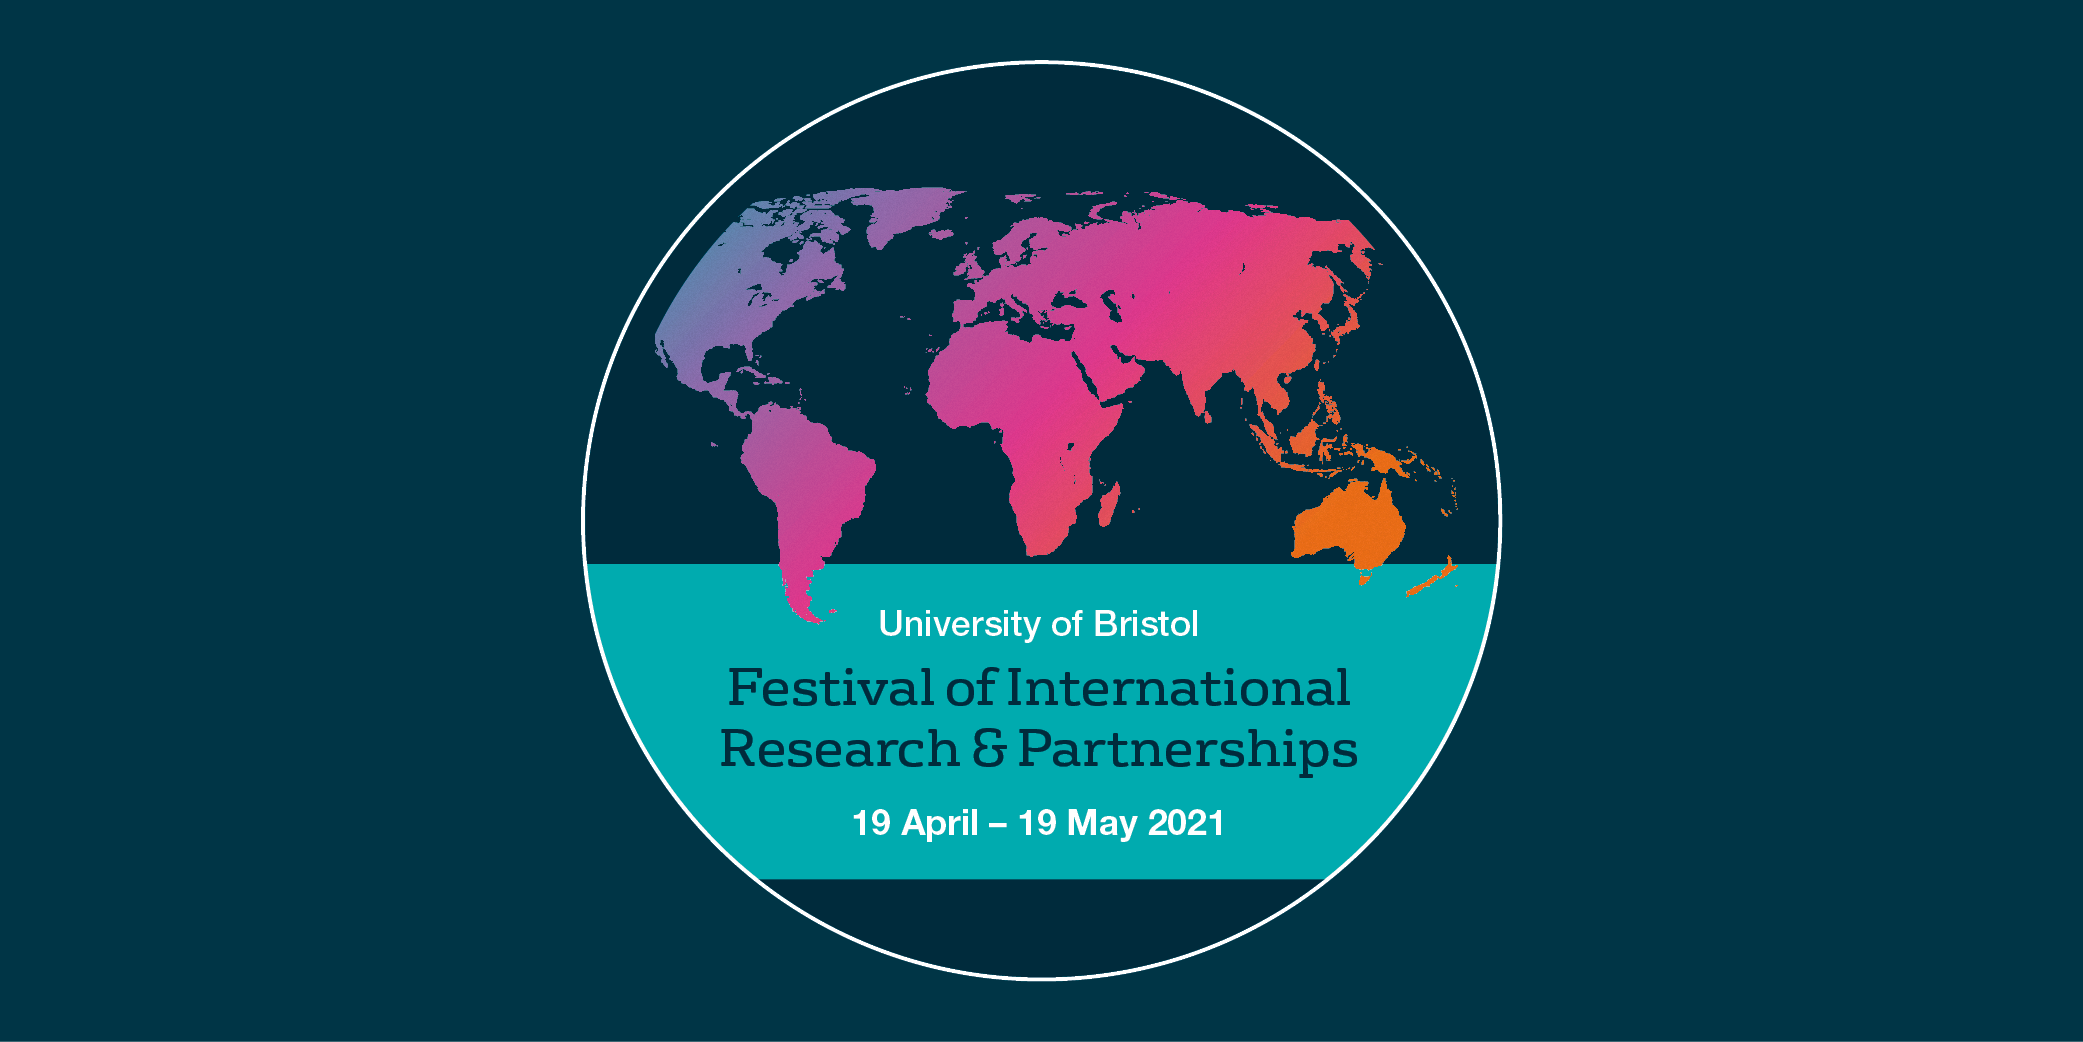 Supporting African-led development through research partnerships: Opportunities and challenges for the University of Bristol